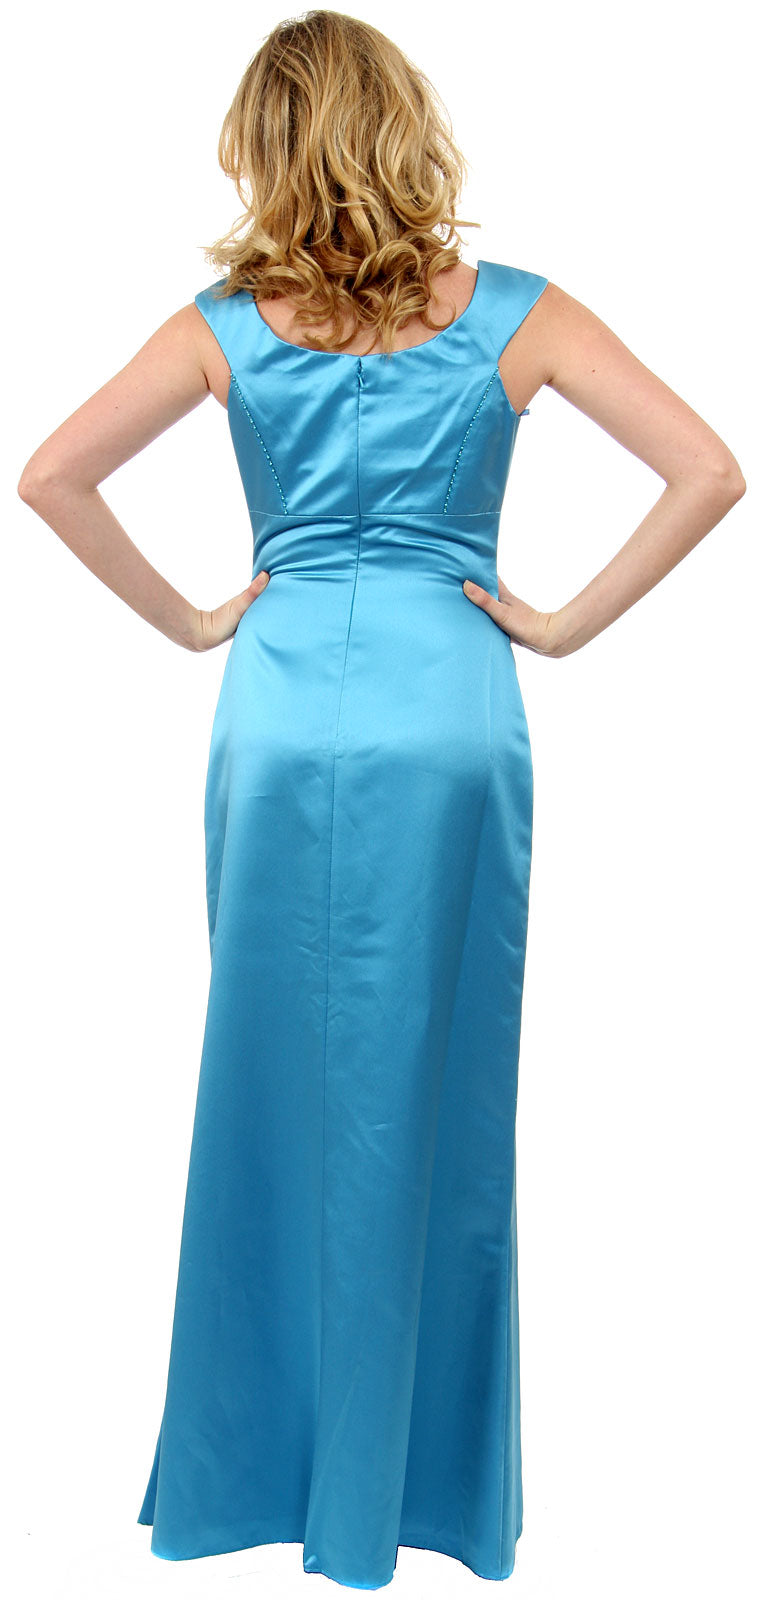 Image of Boat Neck Beaded Bridesmaid Dress back in Carribean Blue